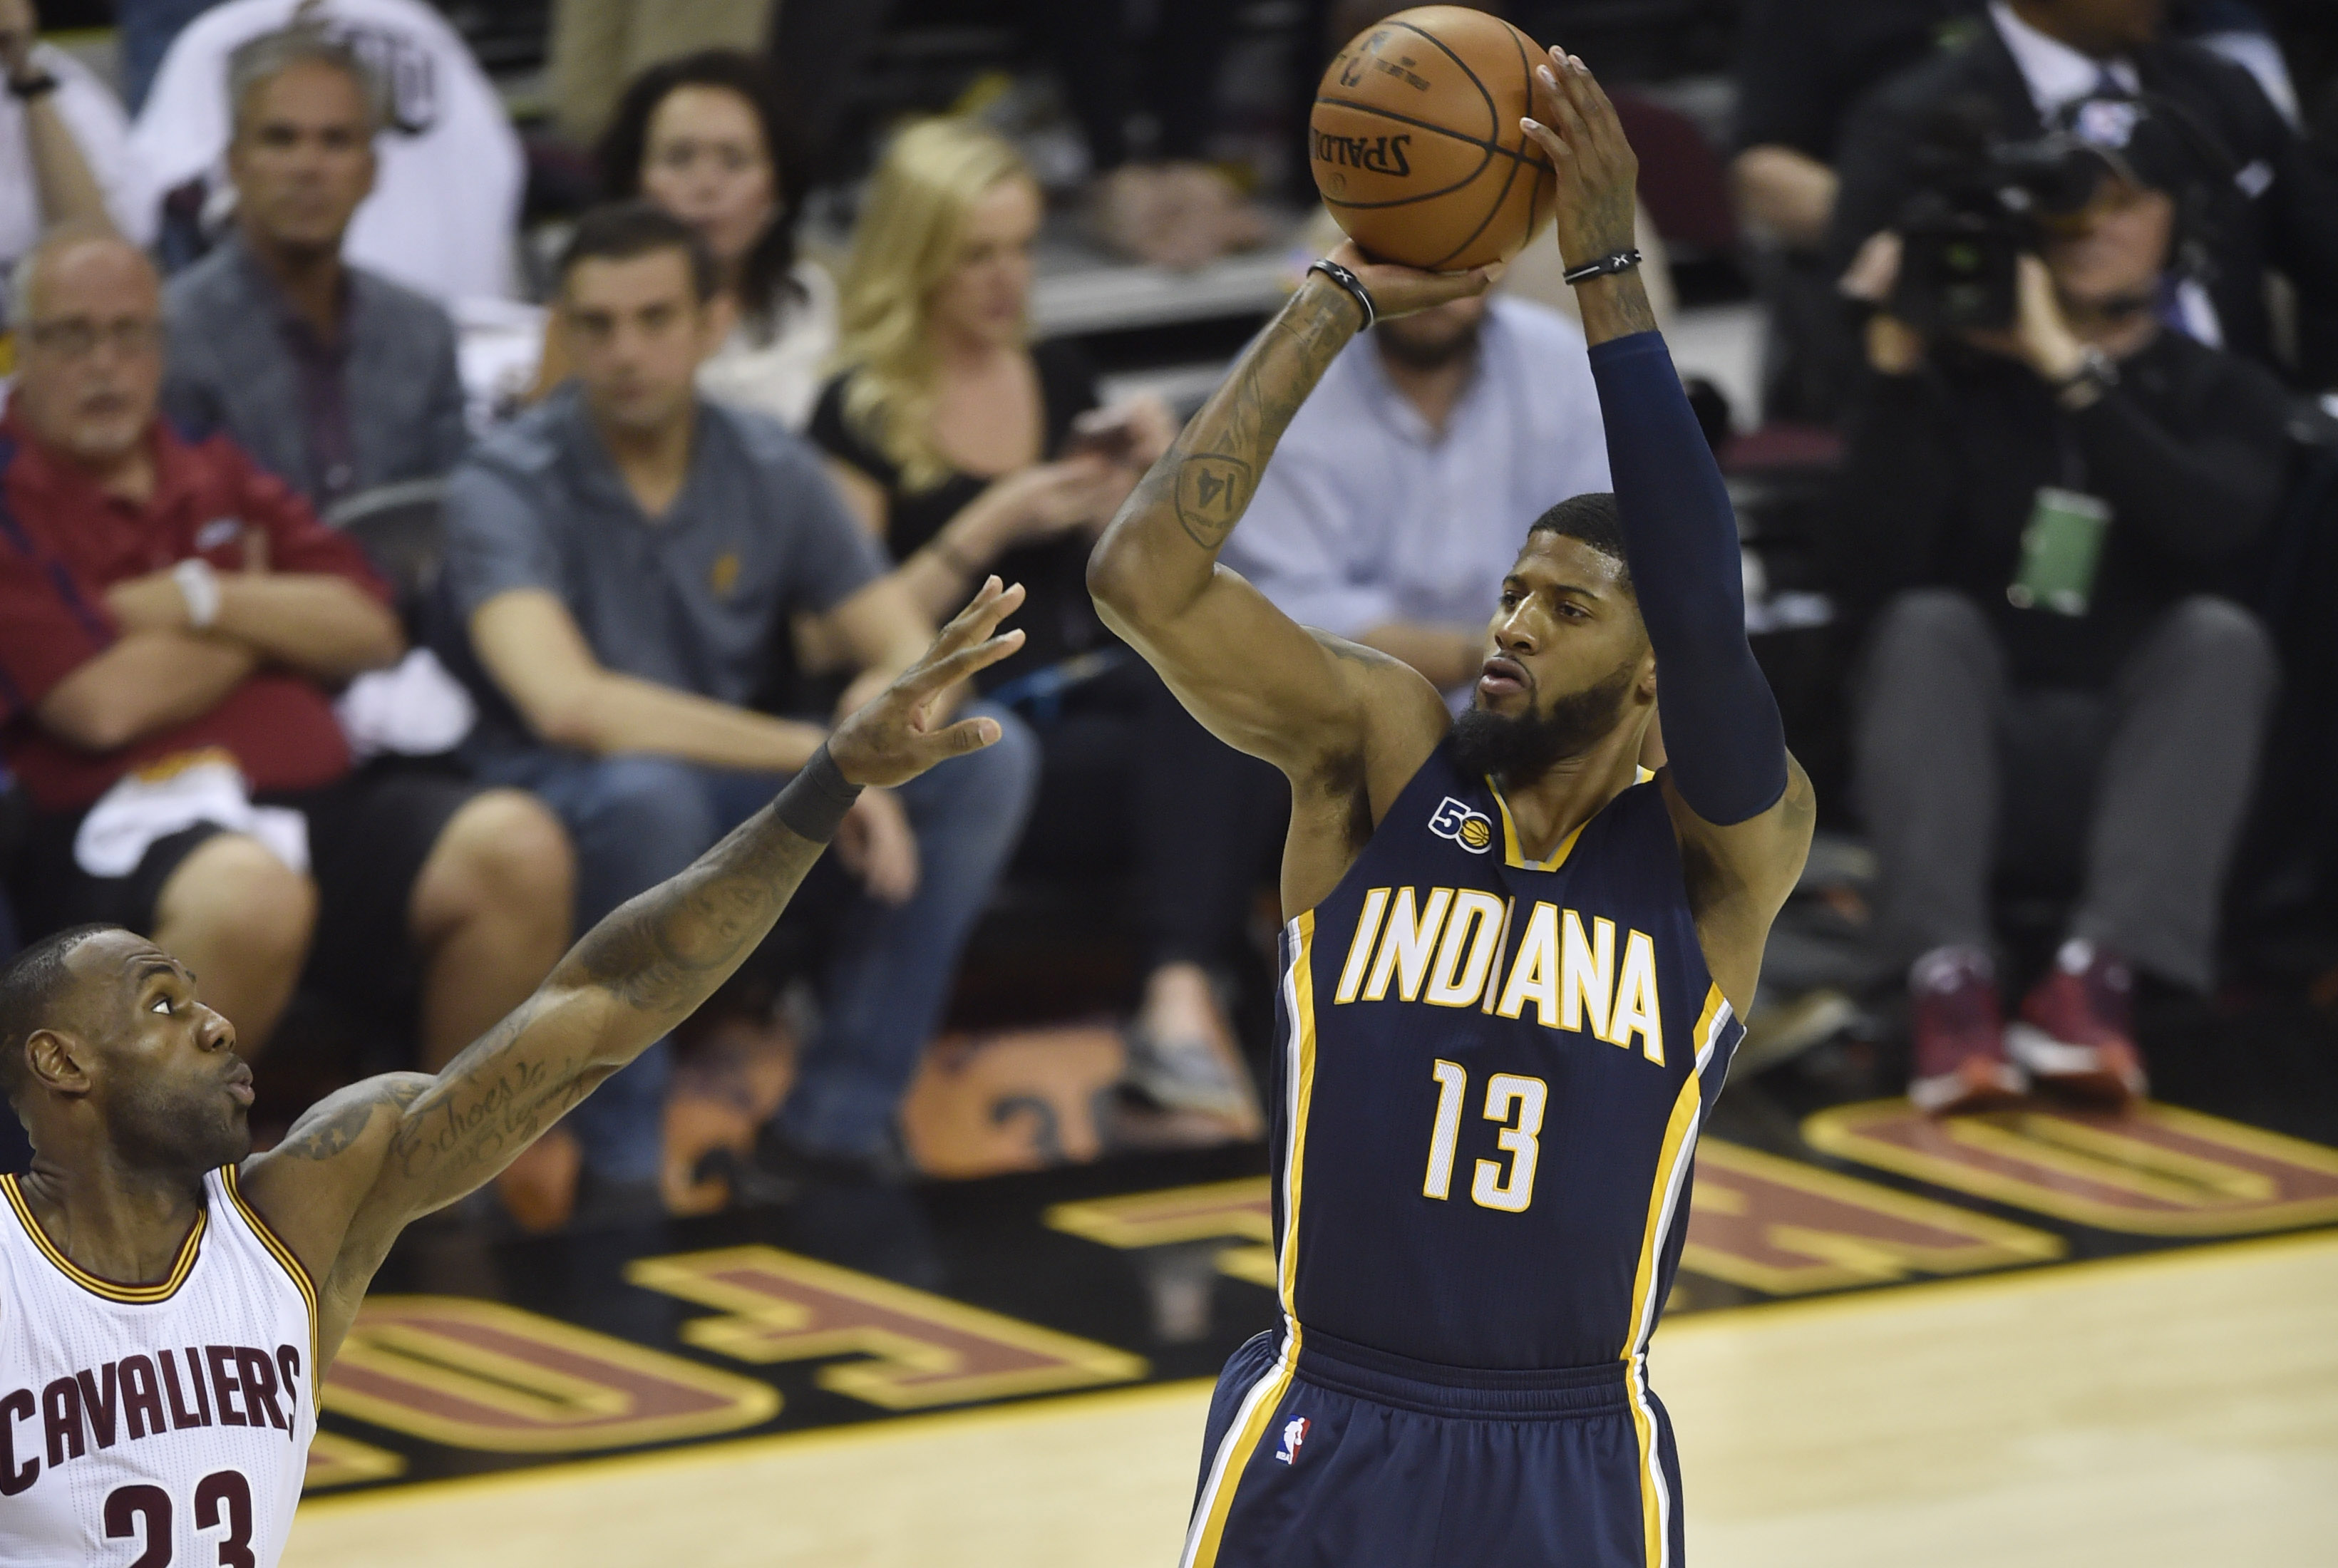 Lakers rumors: Paul George trade expected to be finalized before NBA Draft